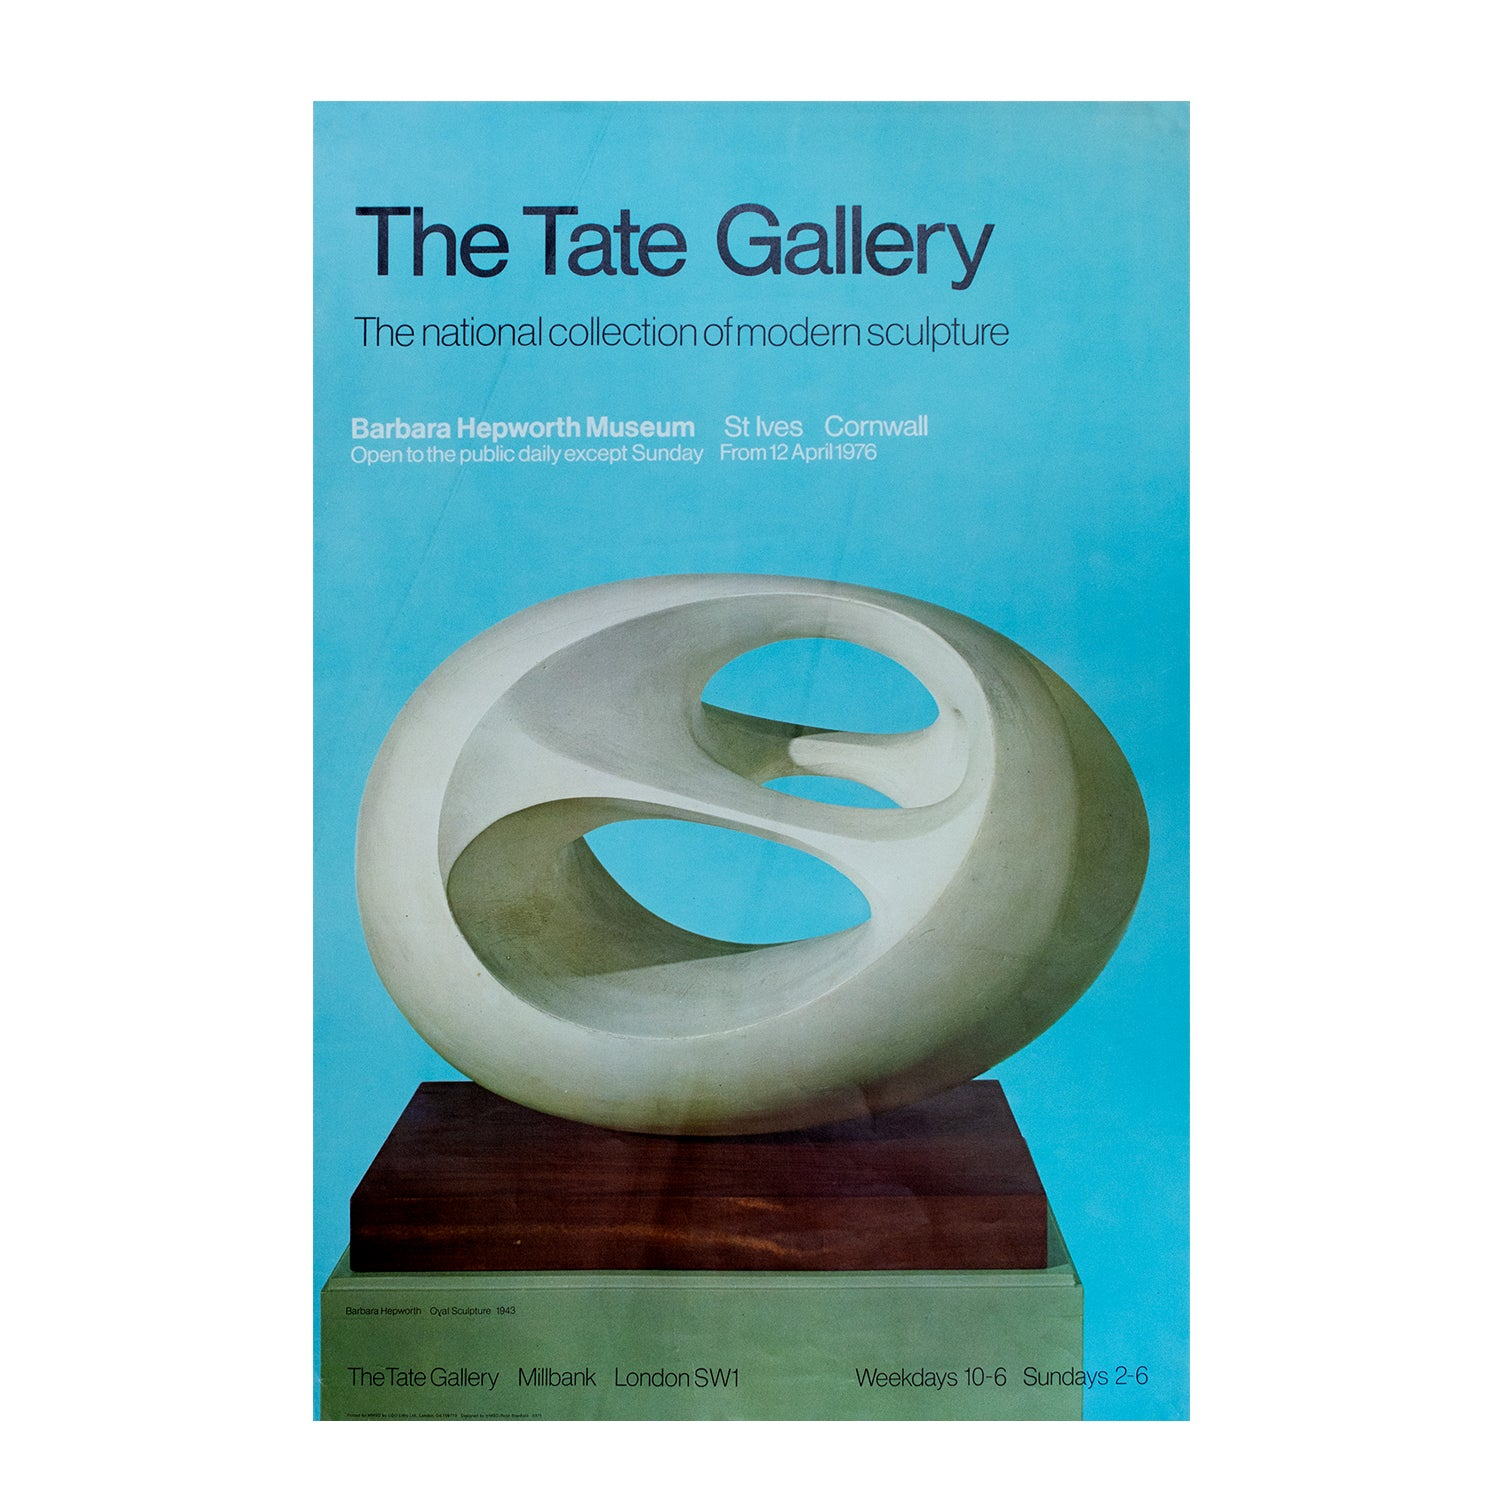 The Tate Gallery. The national collections of modern sculpture